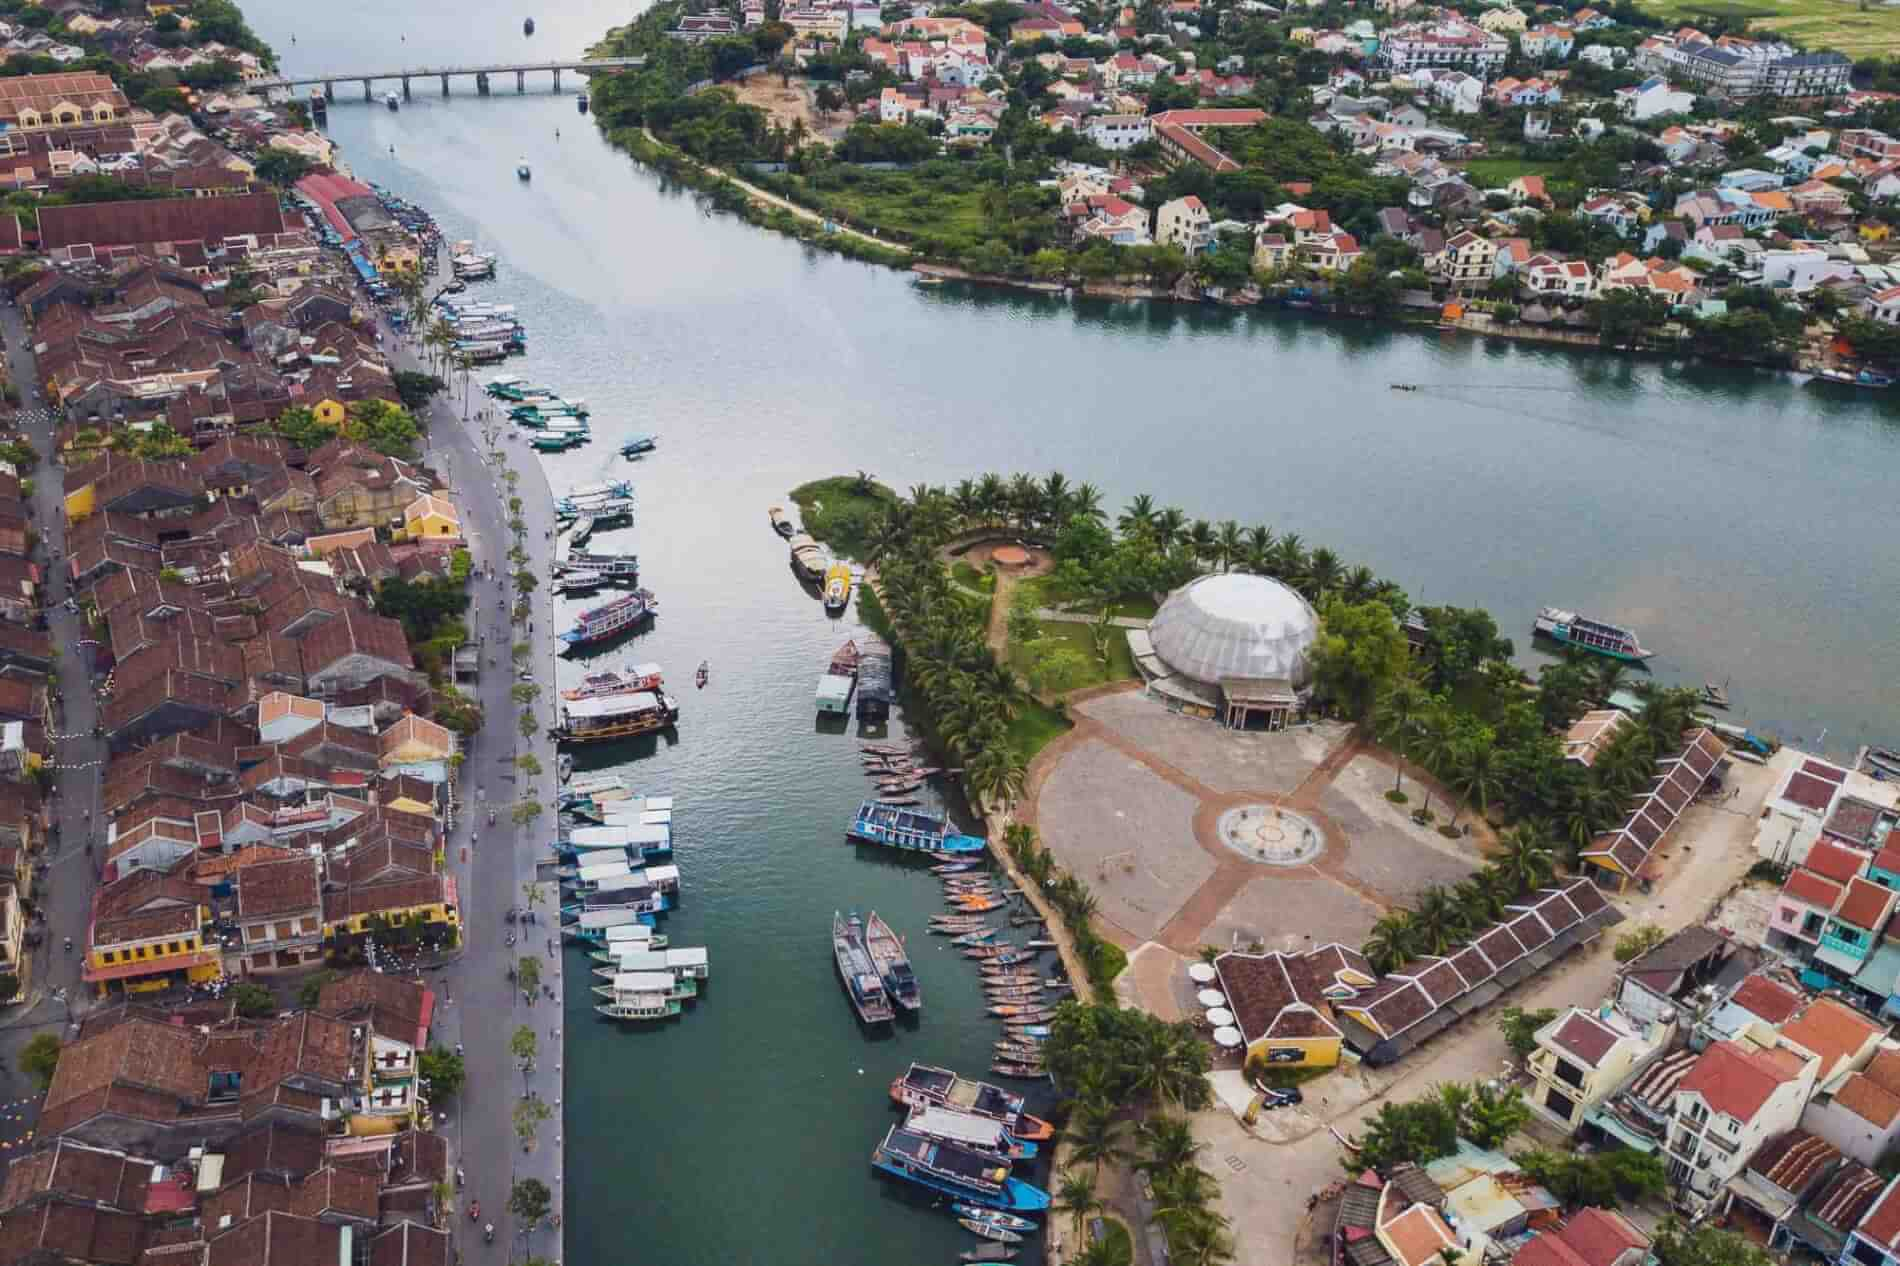 Drone - Workspaces for digital nomads in Hoi An